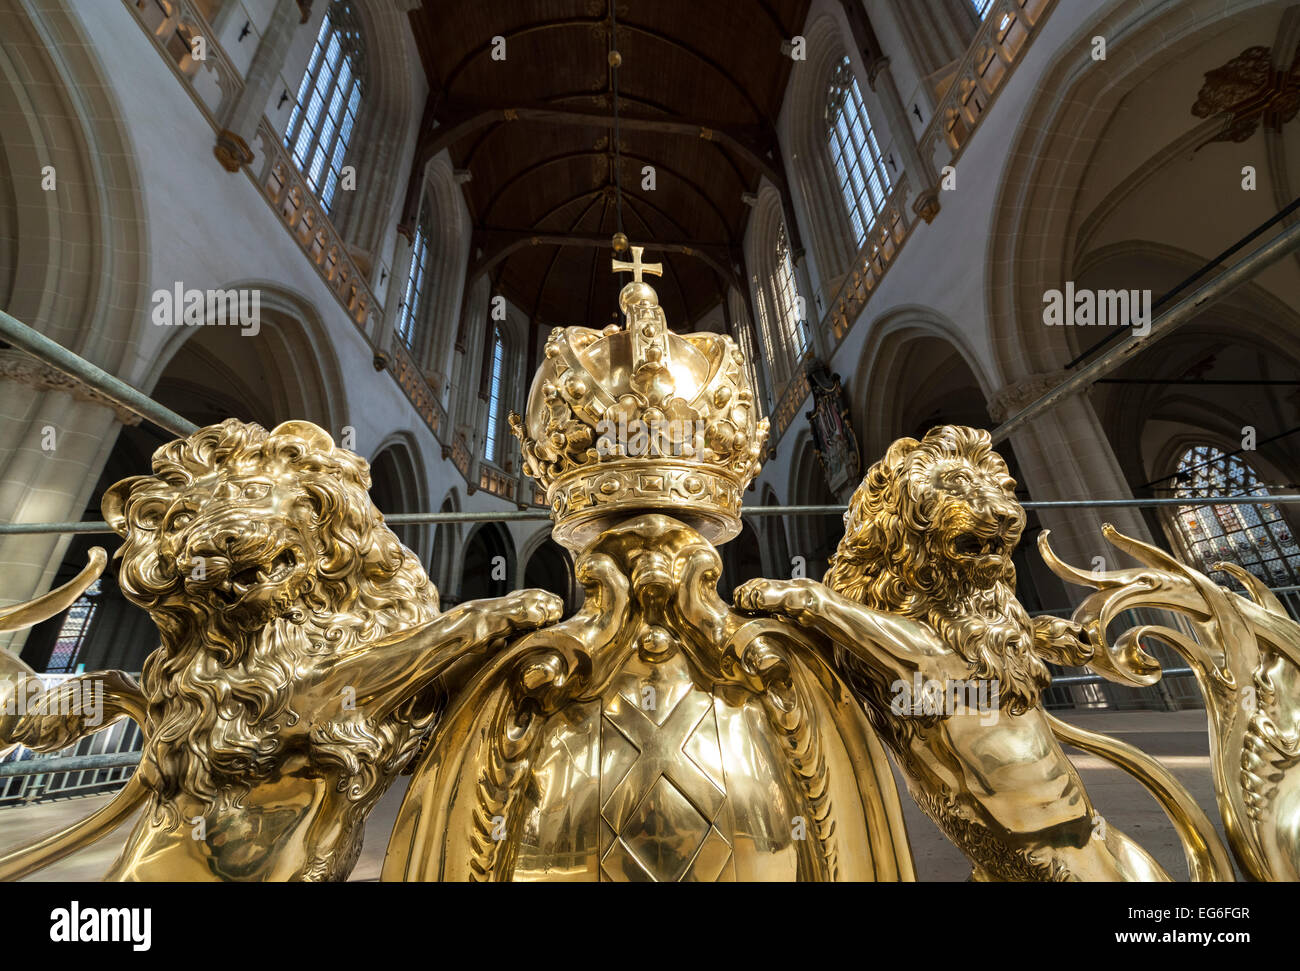 Amsterdam Nieuwe Kerk; New Church interior. Brass top ornament of the Choir Screen (ca 1650) by Johannes Lutma close - Stock Image